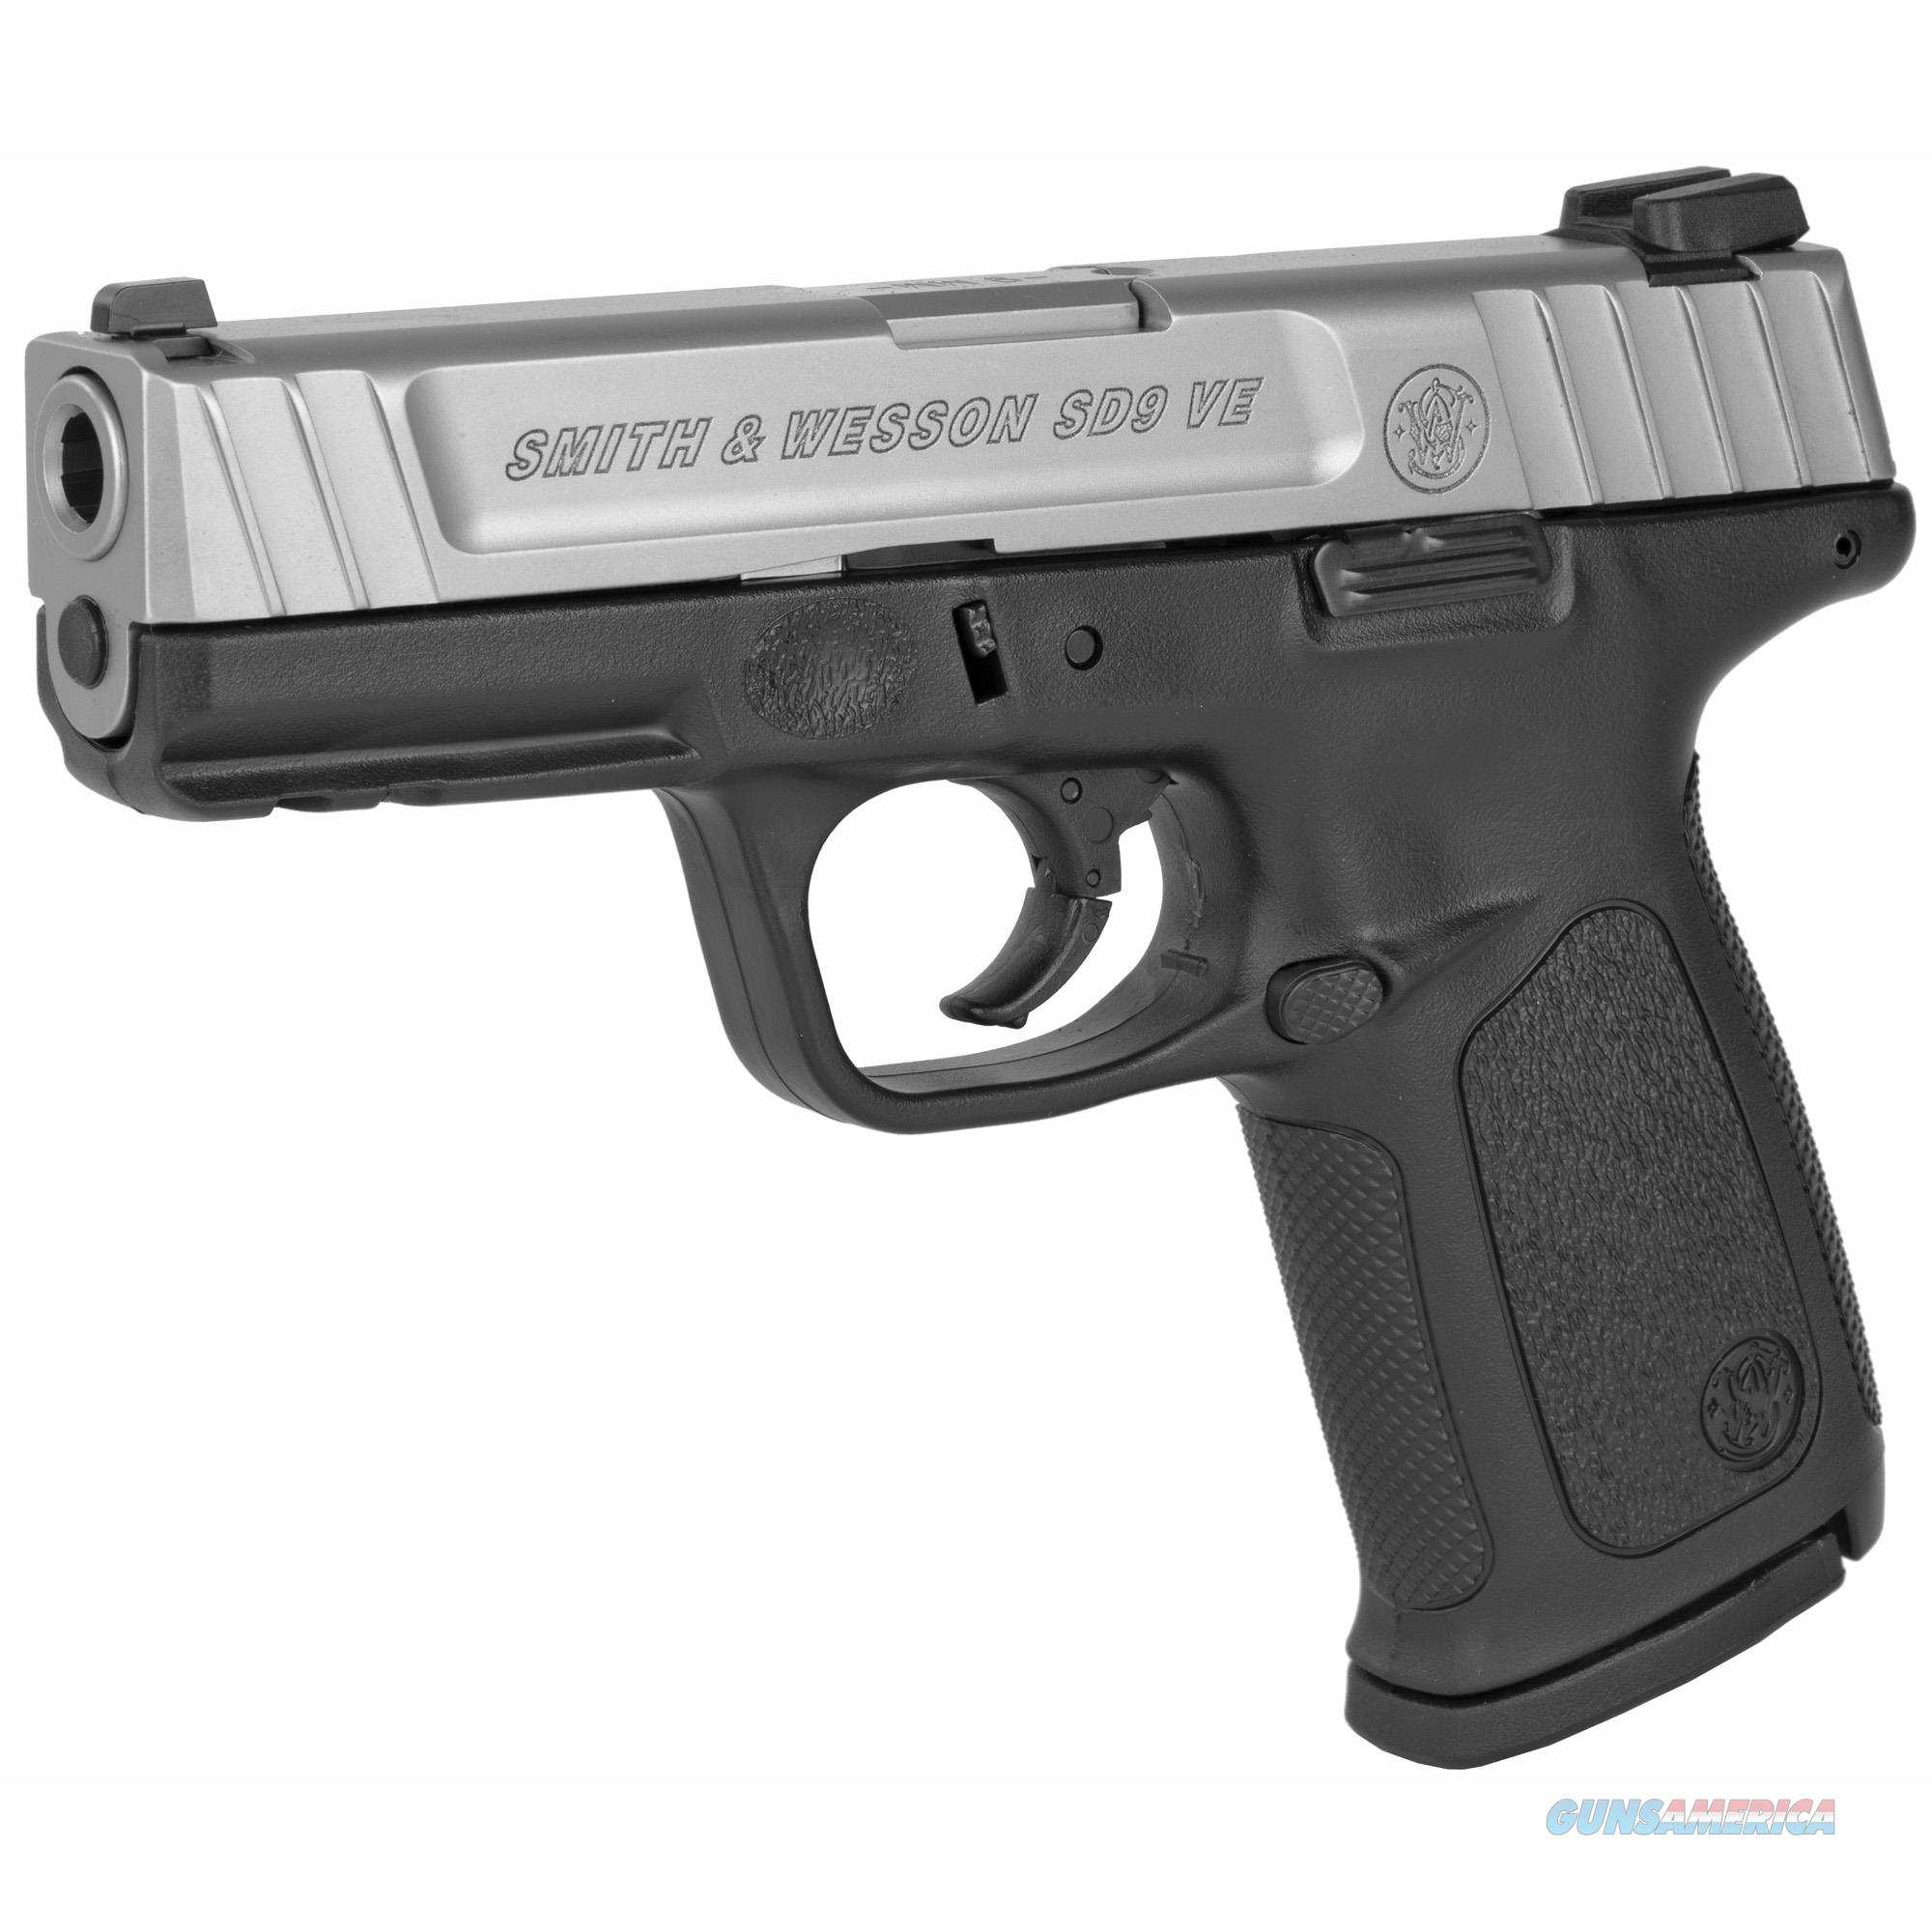 "Smith & Wesson SD9 VE Sigma 9 mm 4"" 16+1 - New in Box  Guns > Pistols > Smith & Wesson Pistols - Autos > Polymer Frame"